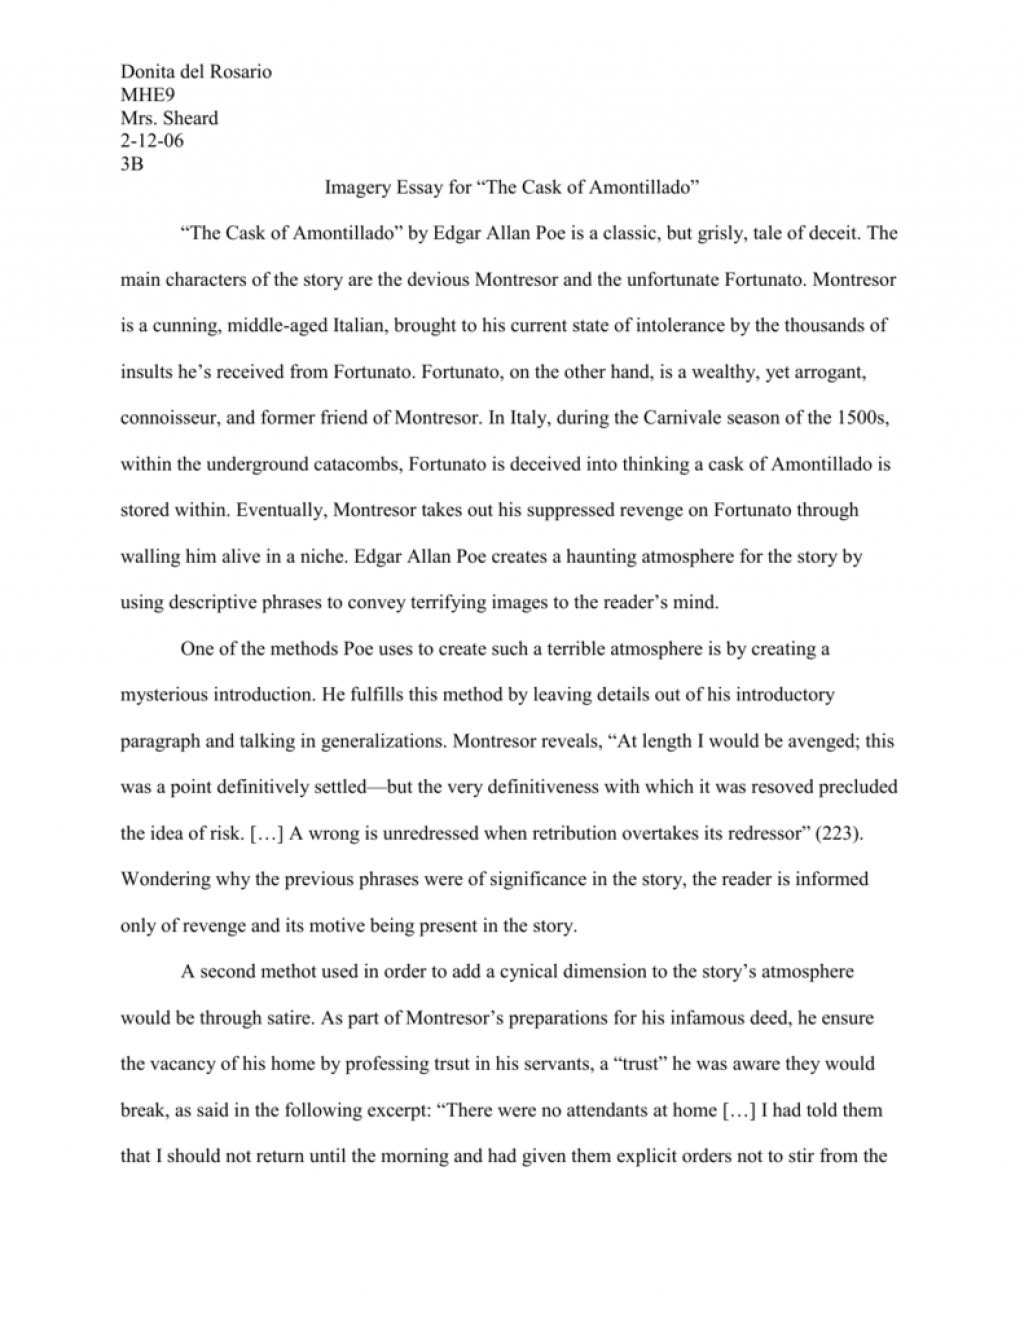 002 Essay Example 008018307 1 The Cask Of Unforgettable Amontillado Topics Conclusion Large